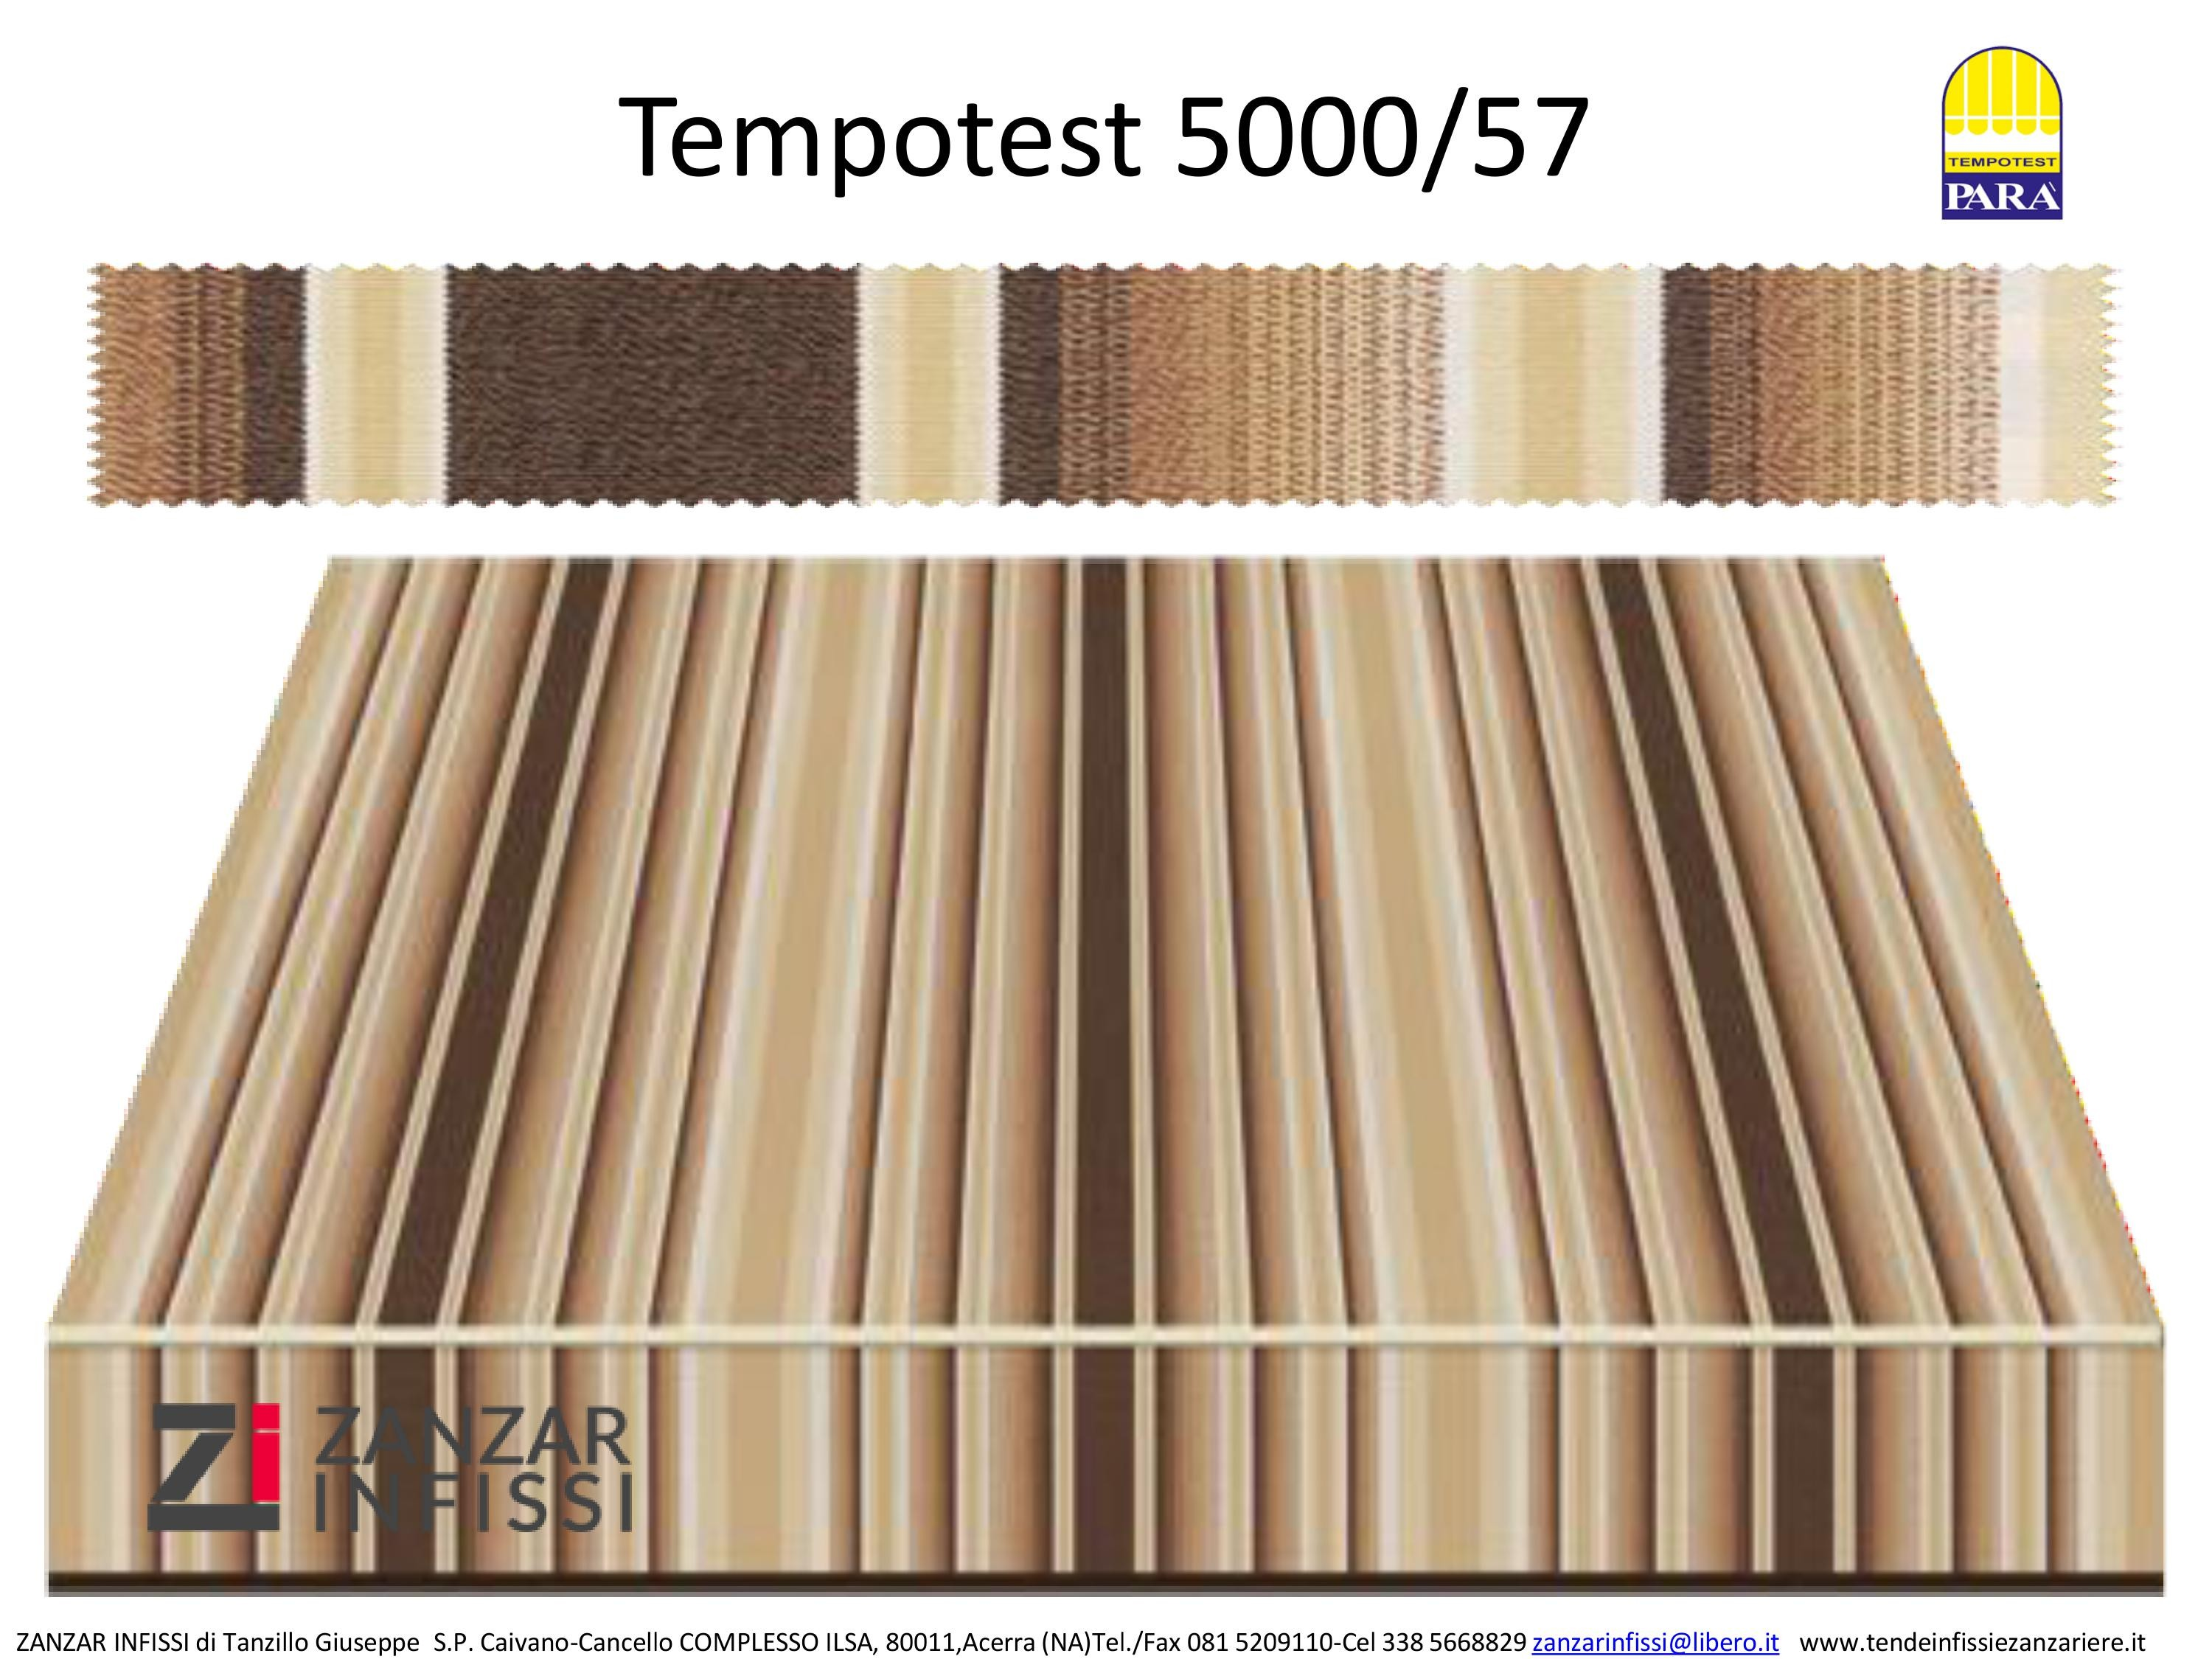 Tempotest 5000/57